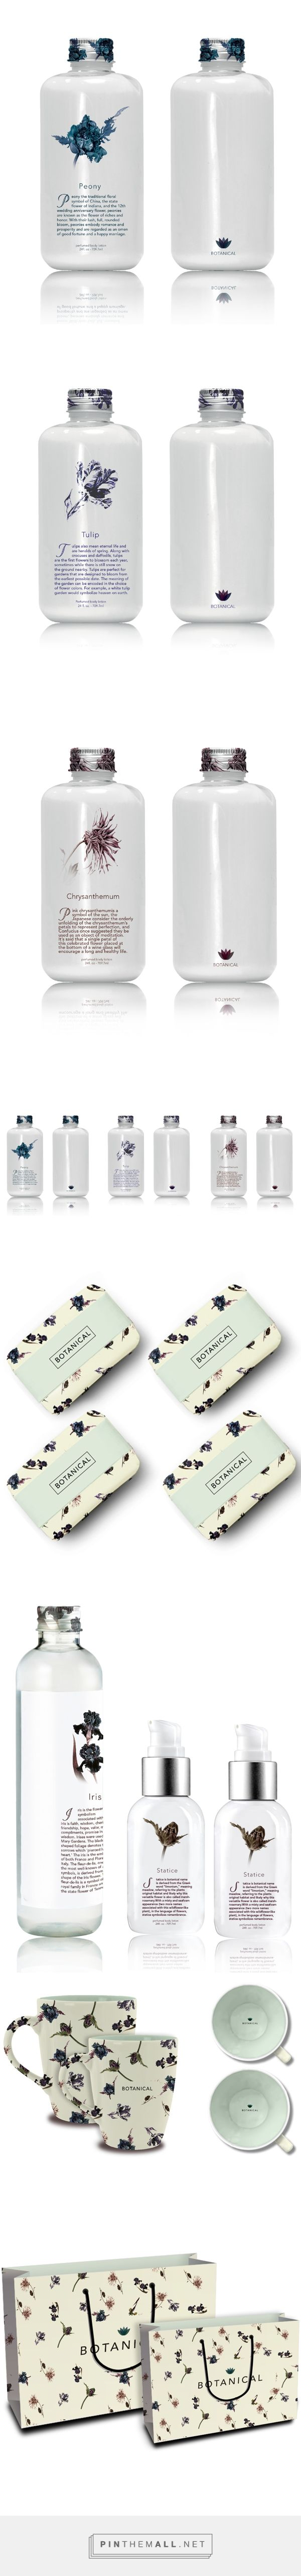 B O T A N I C A L on Behance by Diana Na curated by Packaging Diva PD. Branding packaging of body bath products. All of the scents are flowers.